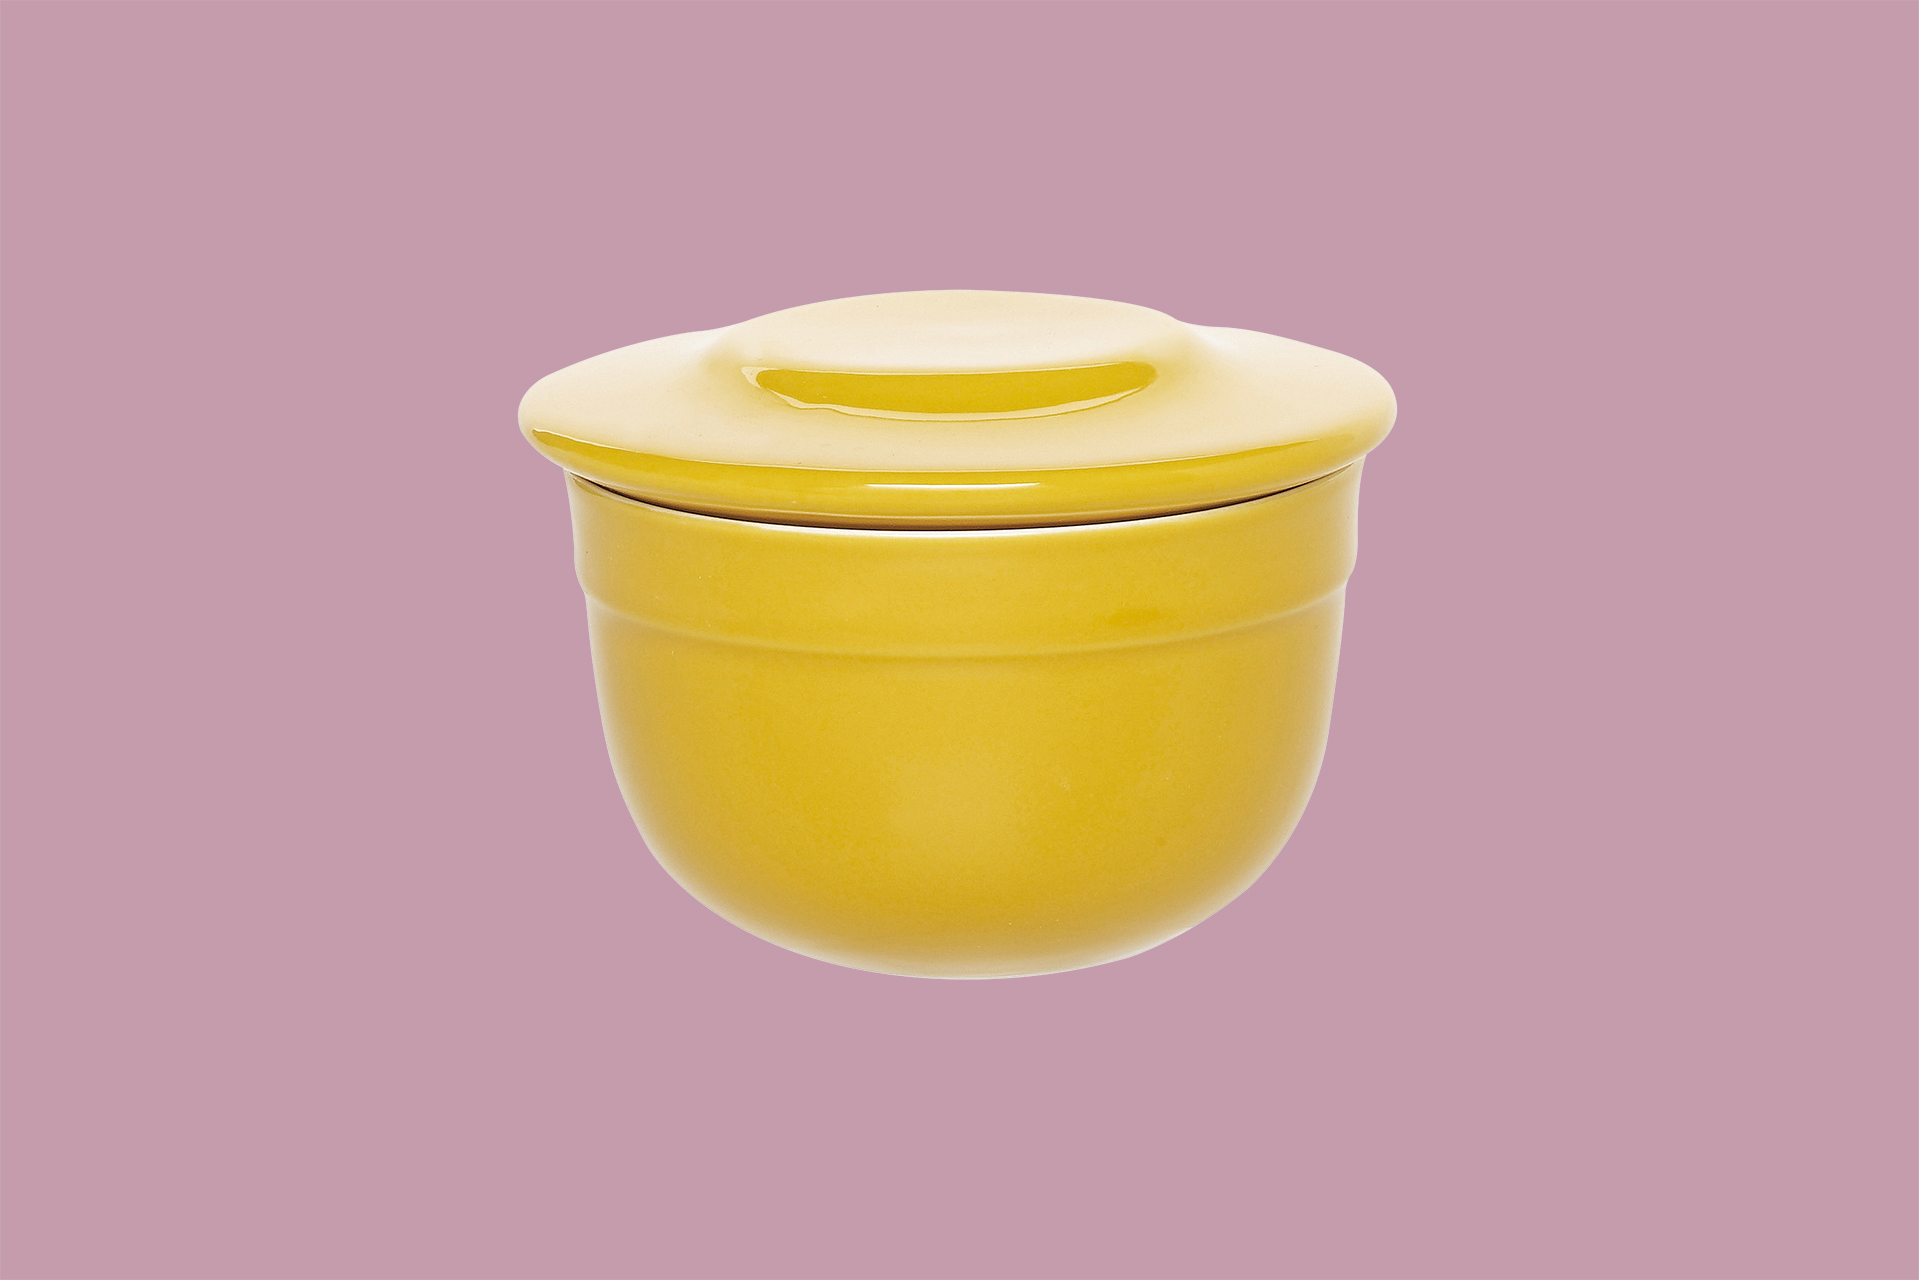 golden-hued butter pot